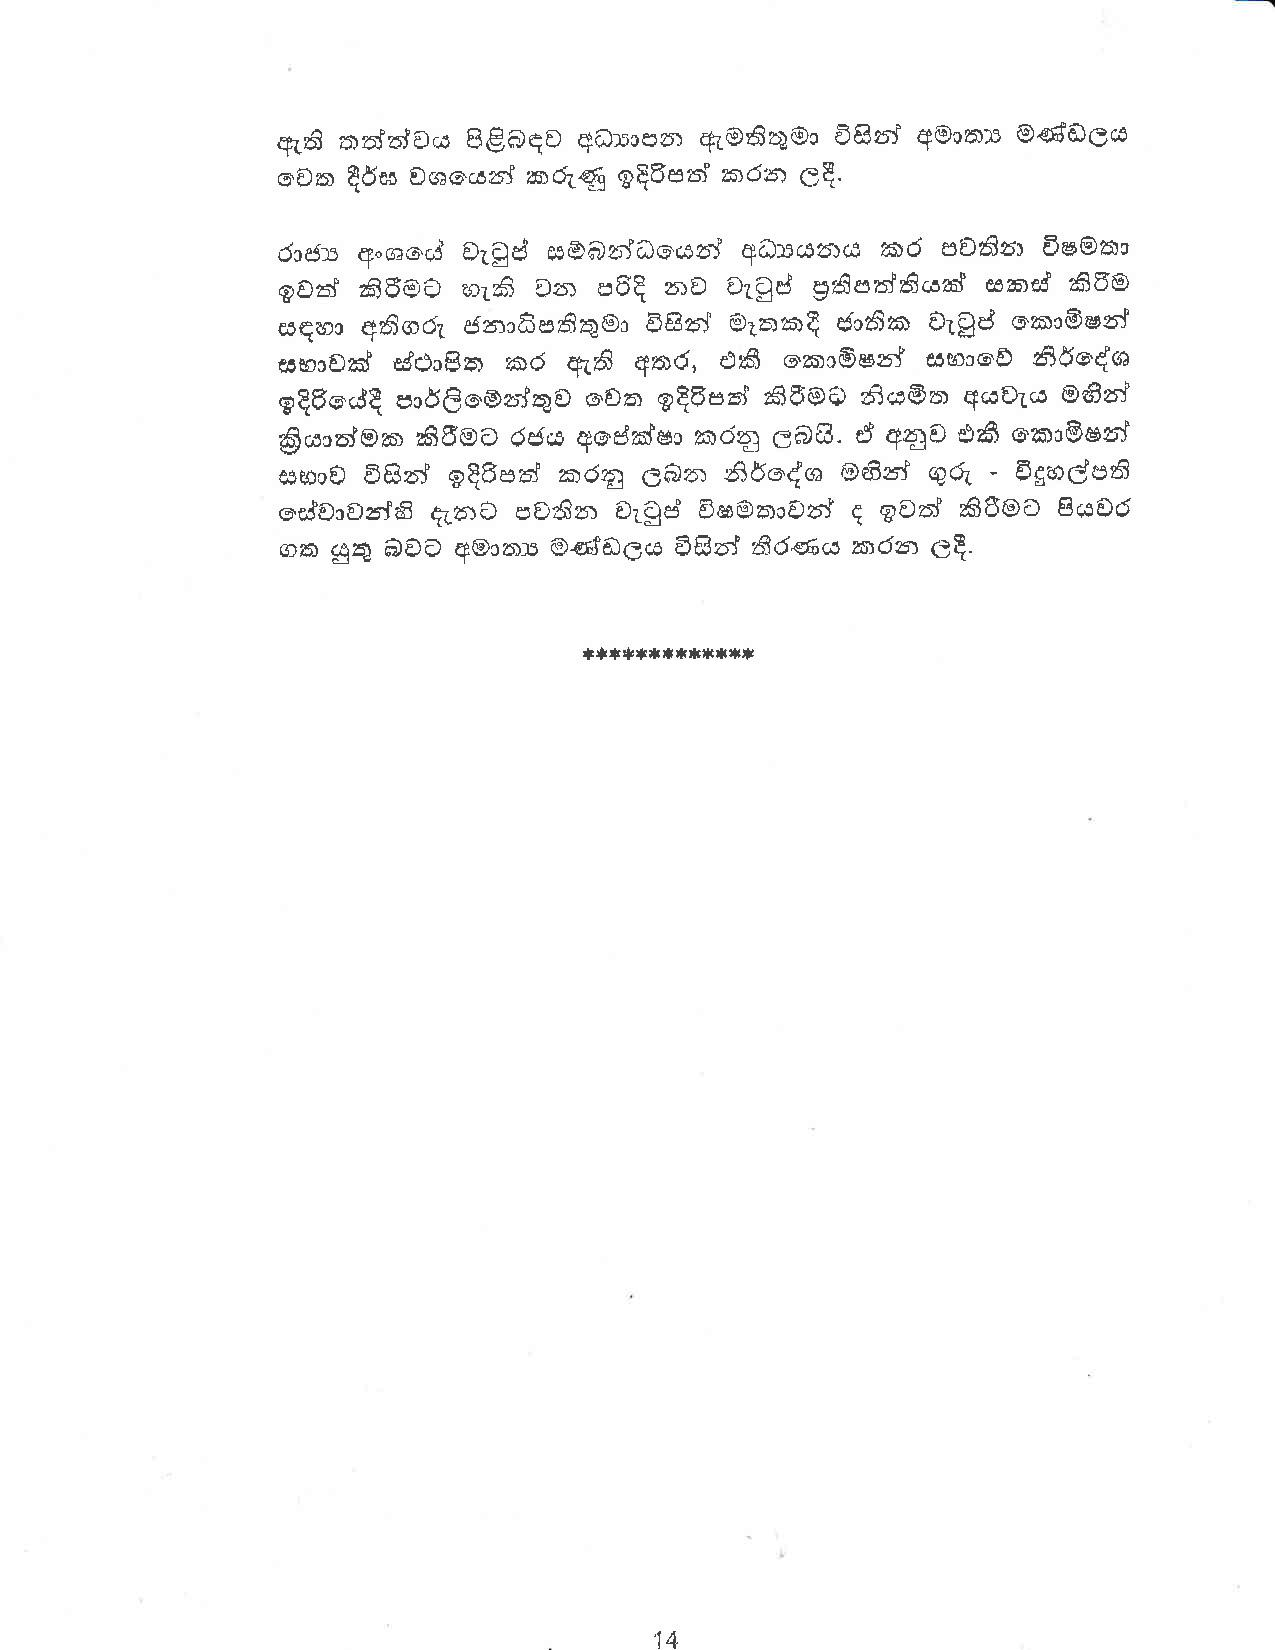 Cabinet Decision on 27.02.2020 page 014